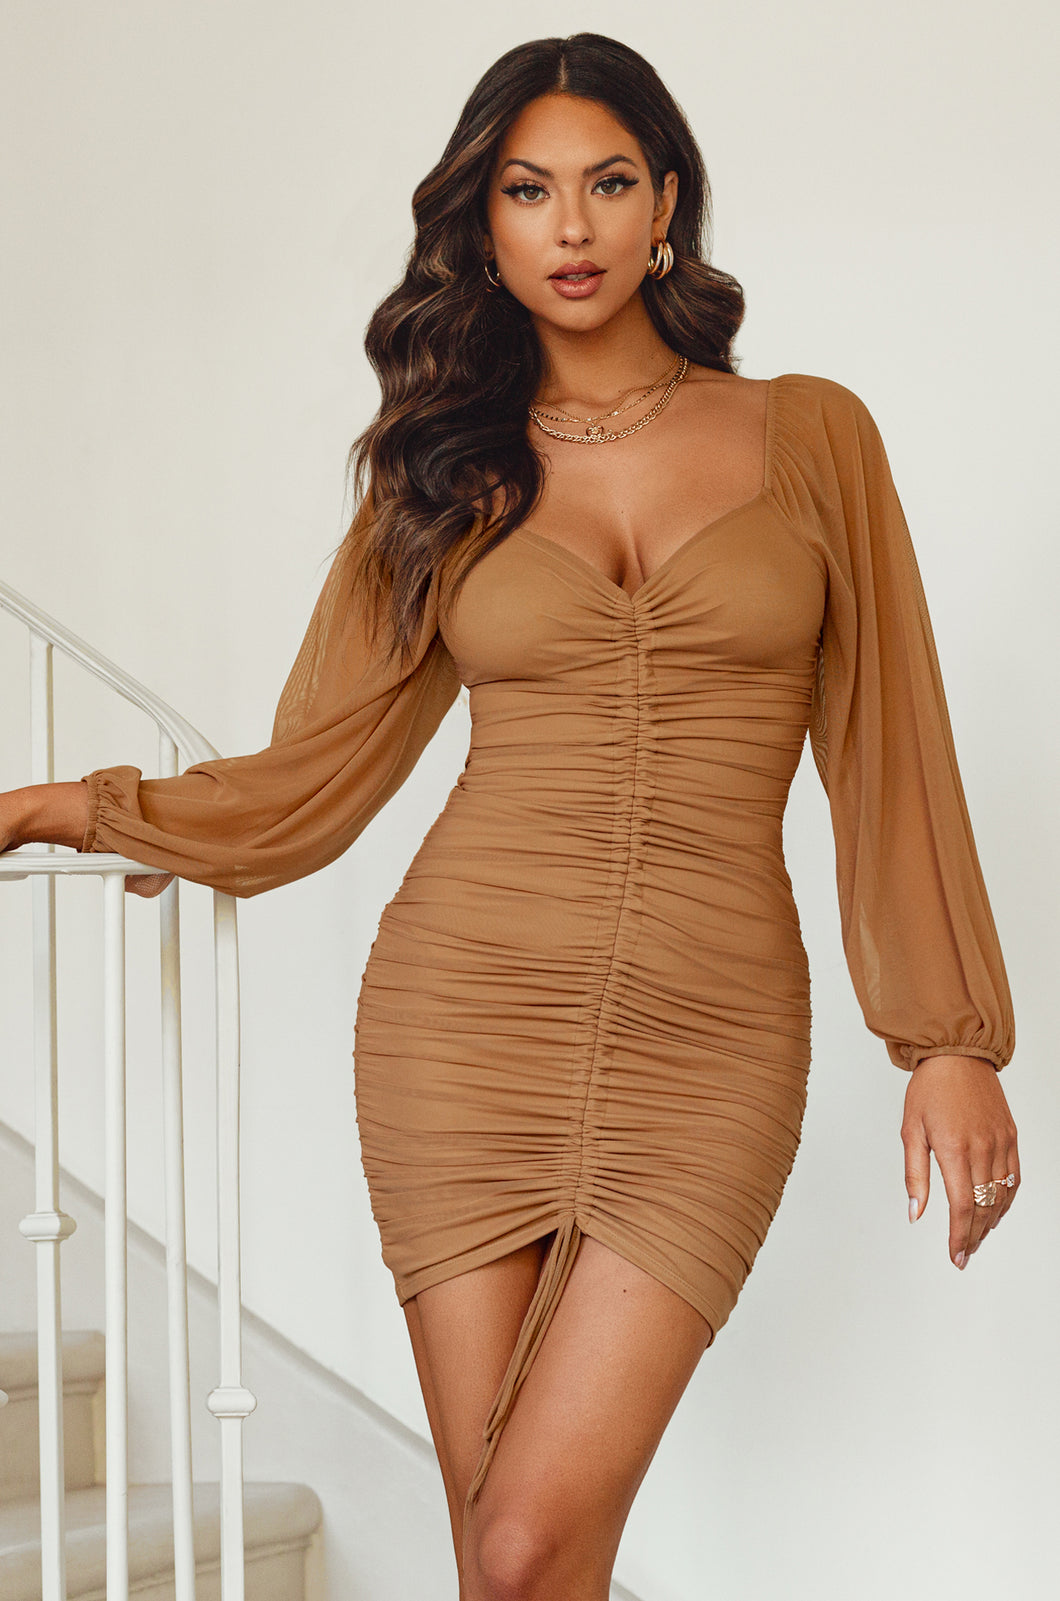 Ready For You Dress - Nude